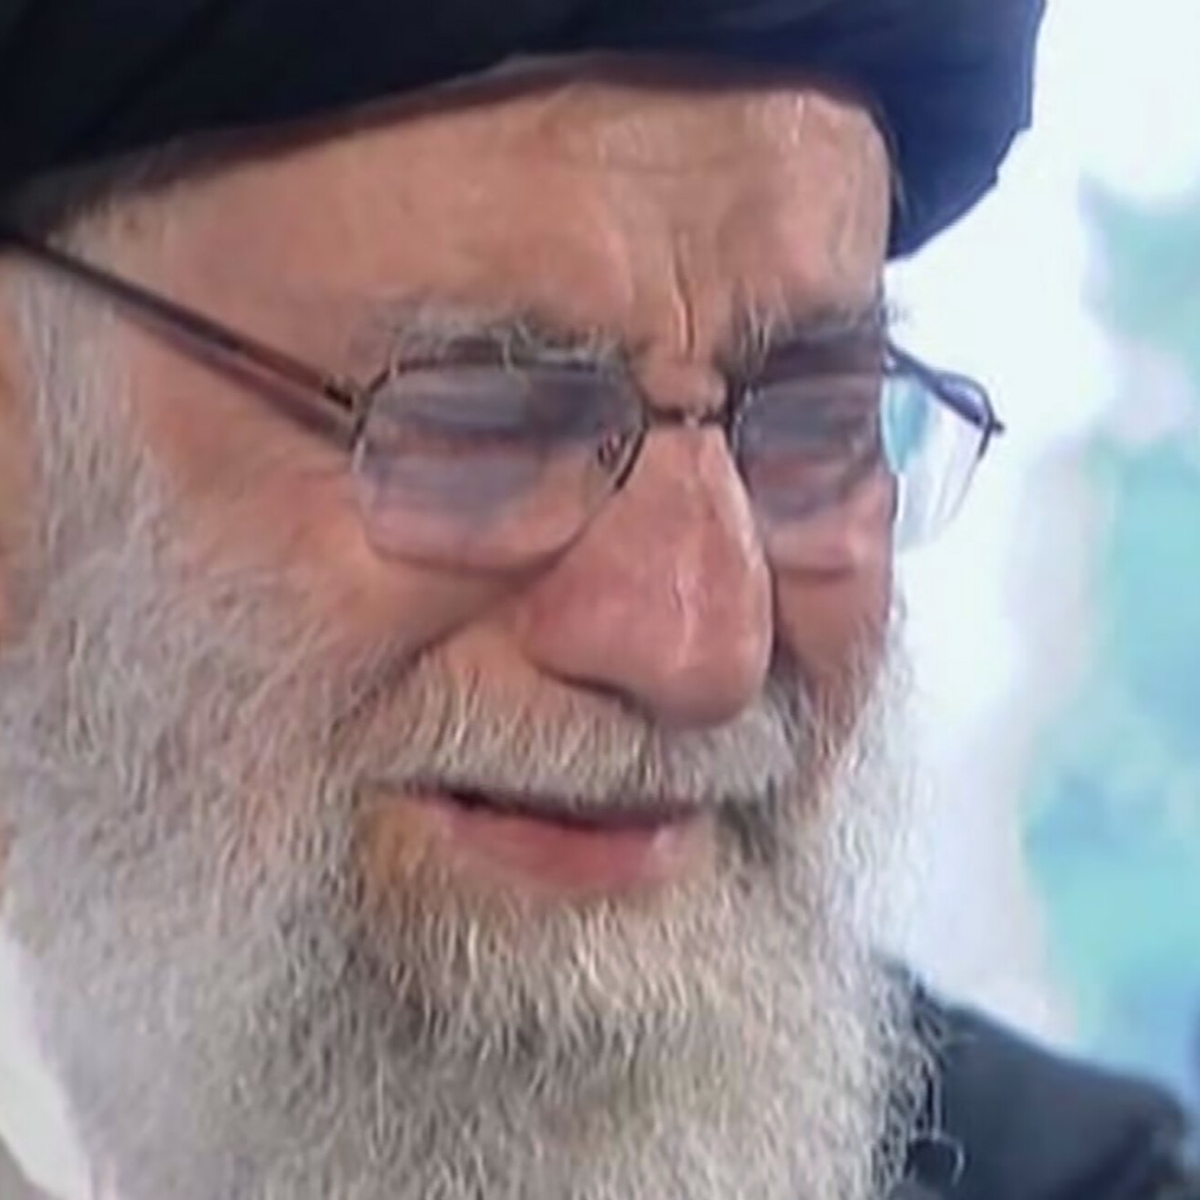 Khamenei weeps over Iran General's coffin at funeral